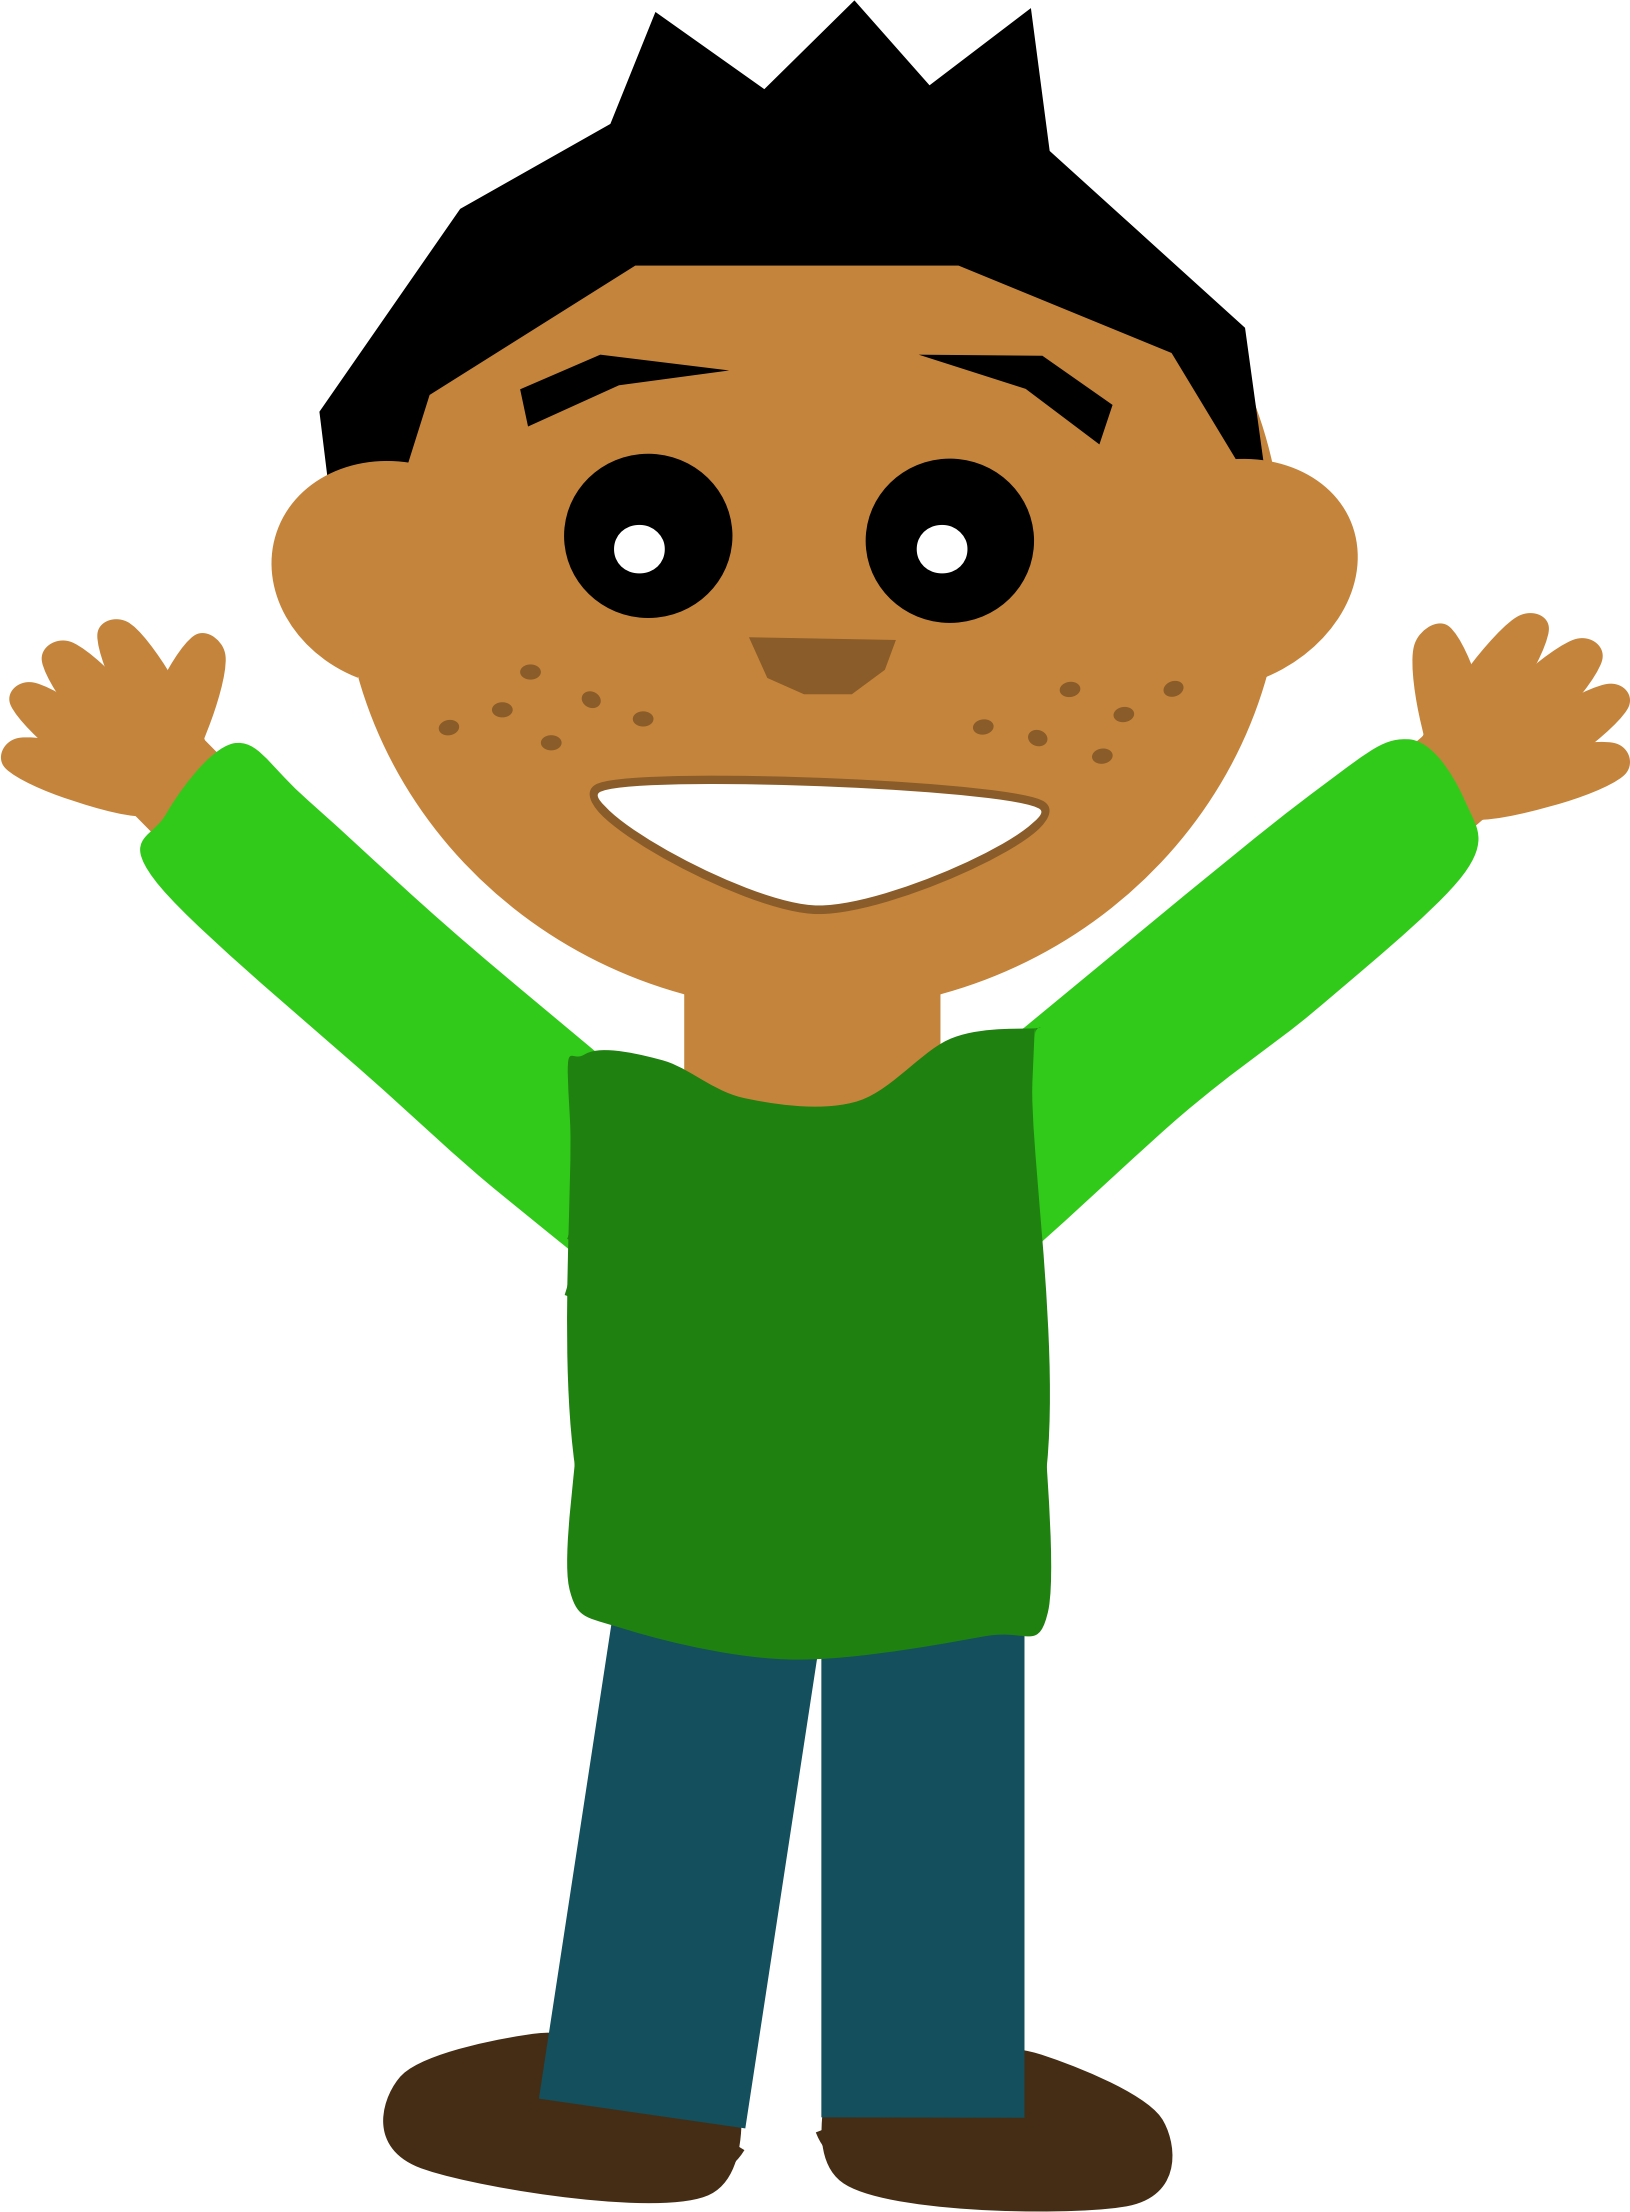 Volleyball clipart child. Happy guy big image